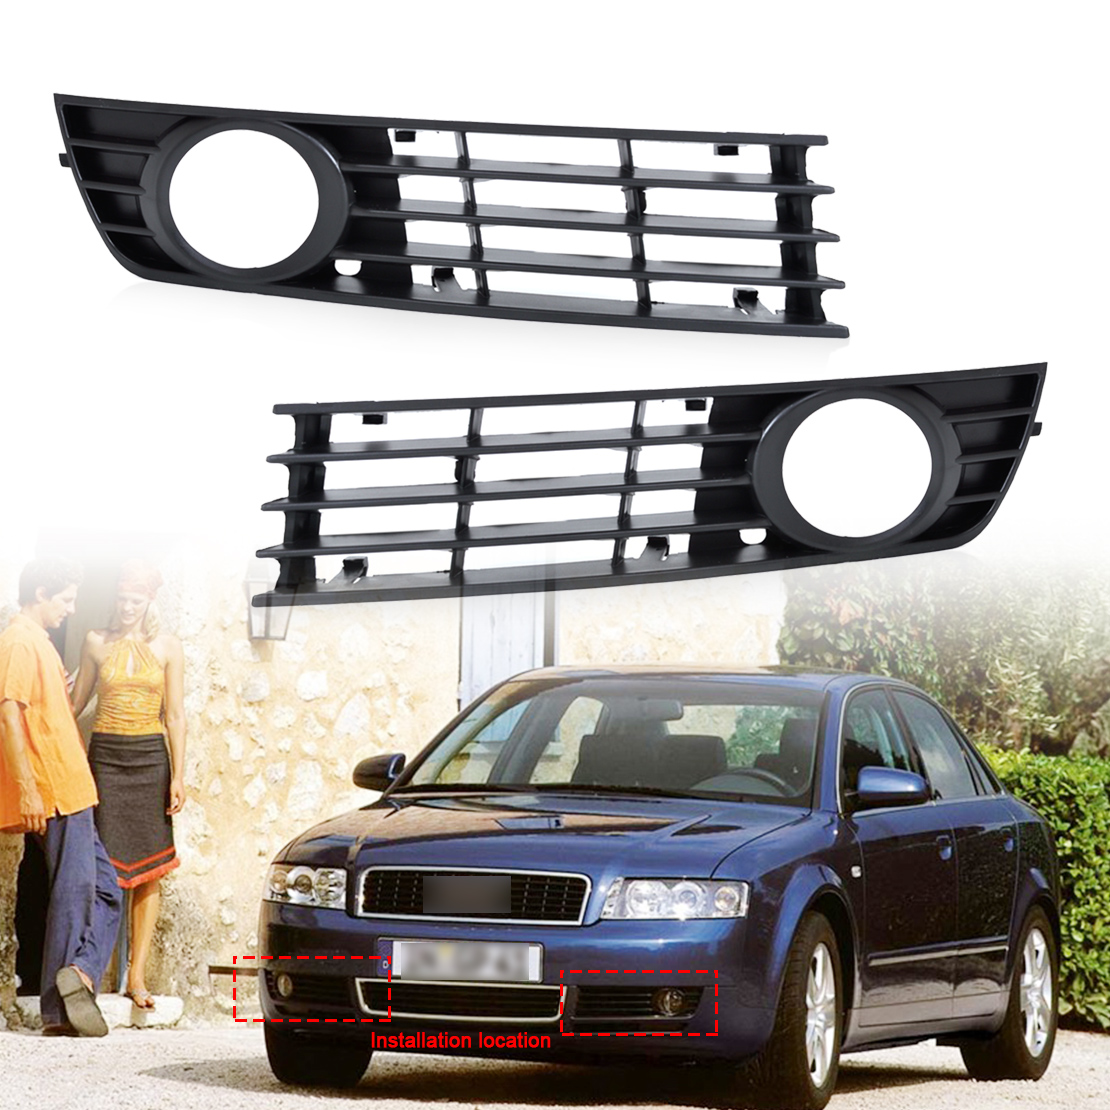 DWCX 8E0807681 8E0807682 2pcs Front Left/Right Insert Bumper Fog Light Grille Protective Mesh for Audi A4 B6 2002 2003 2004 2005 car front bumper mesh grille around trim racing grills 2013 2016 for ford ecosport quality stainless steel